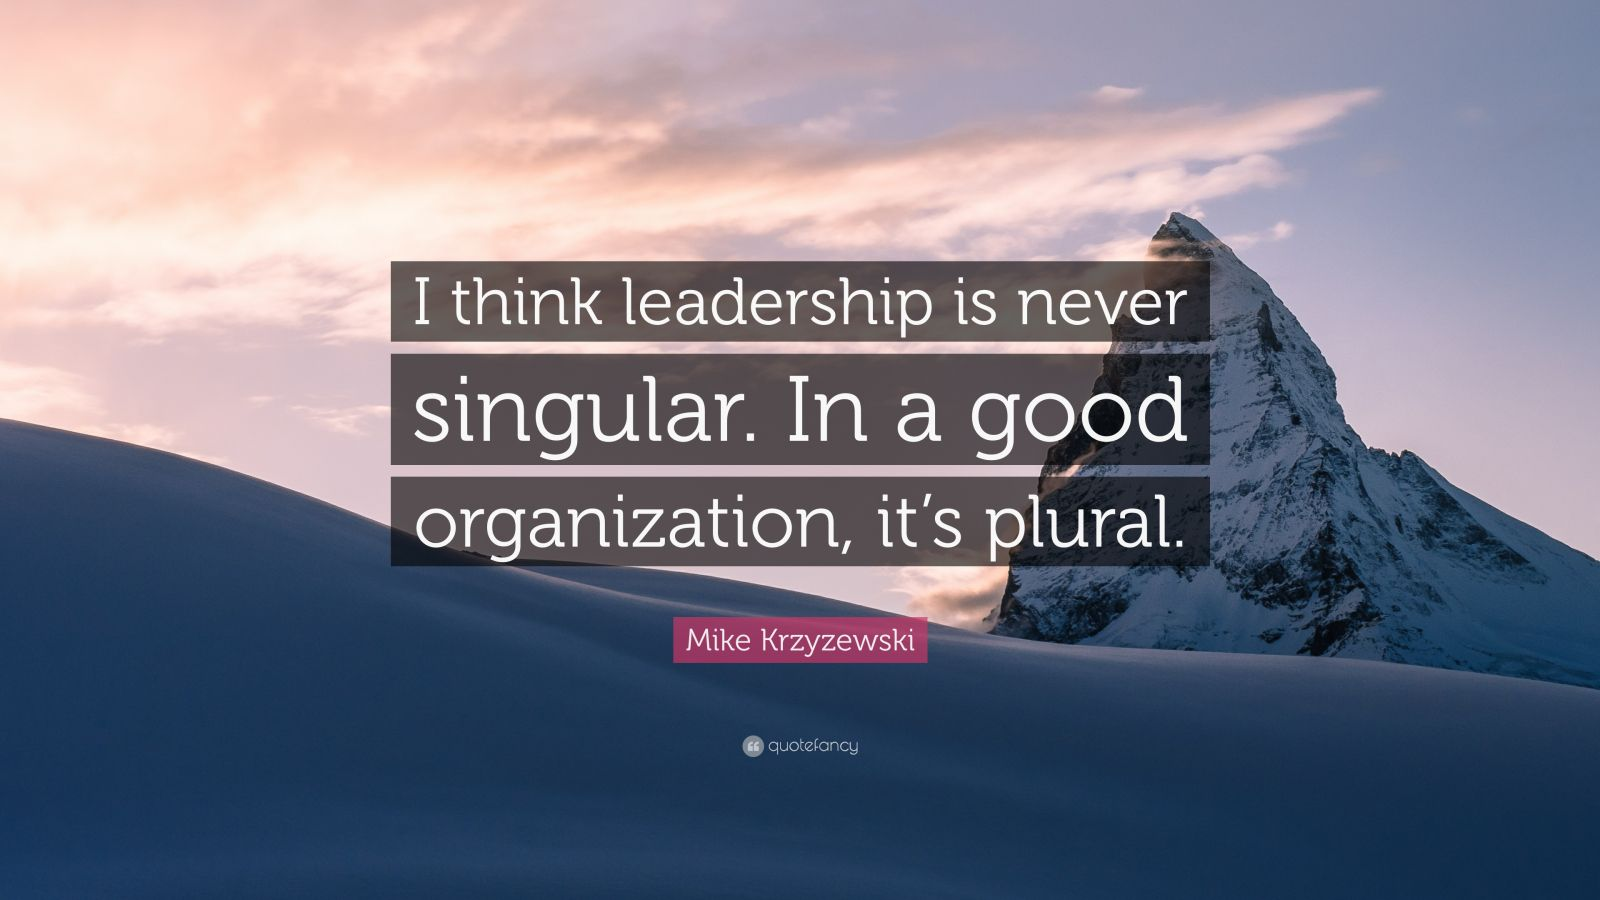 """Mike Krzyzewski Quote: """"I think leadership is never singular. In a good organization, it's plural."""""""